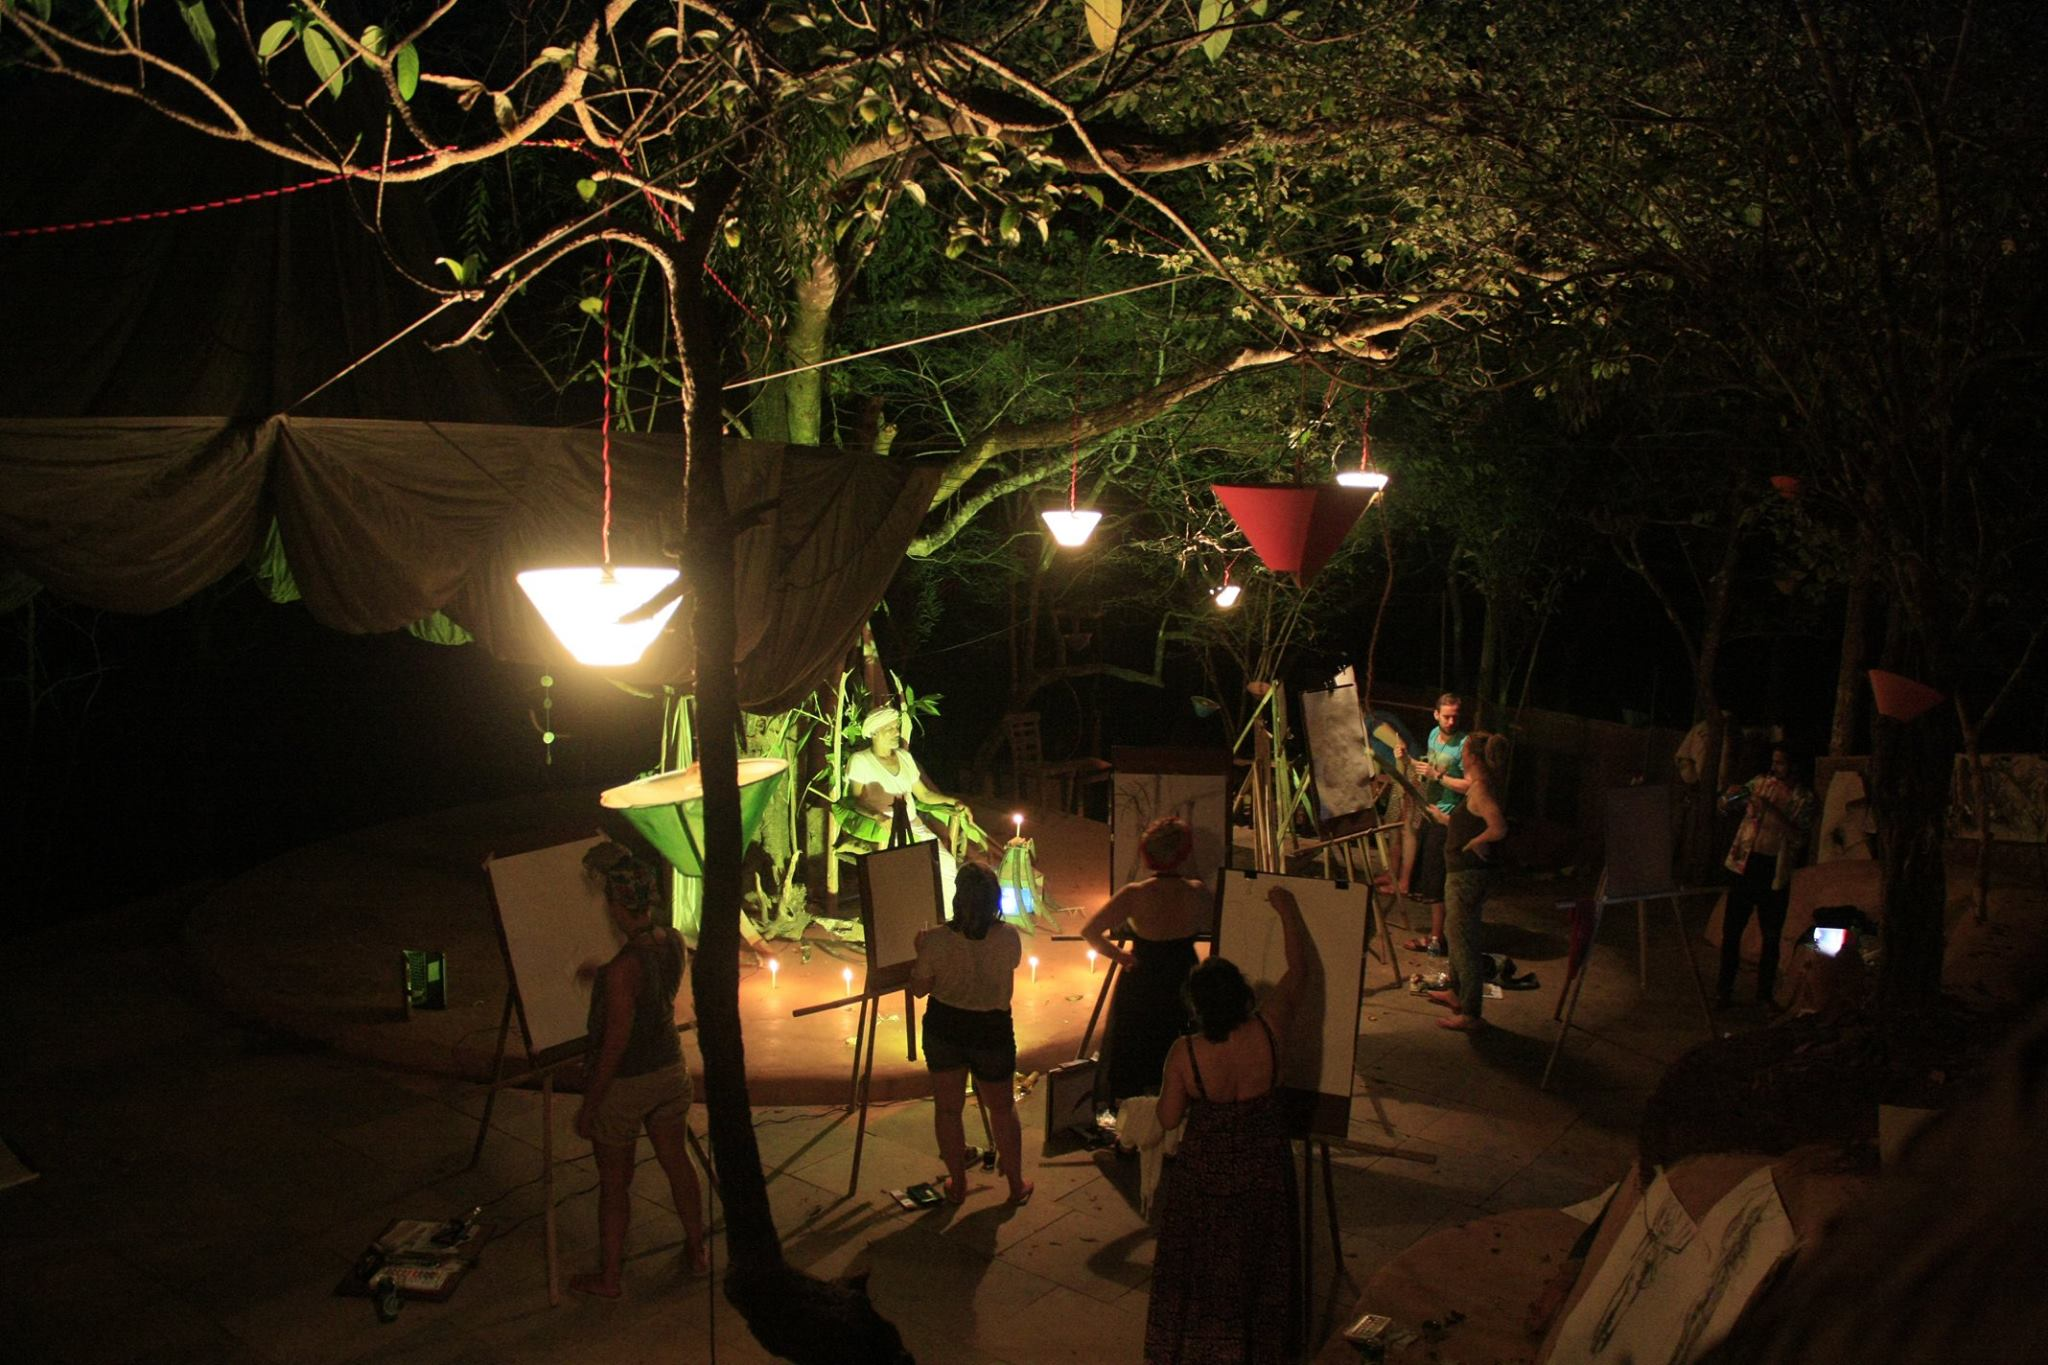 A moonlight life drawing session under the banyan tree